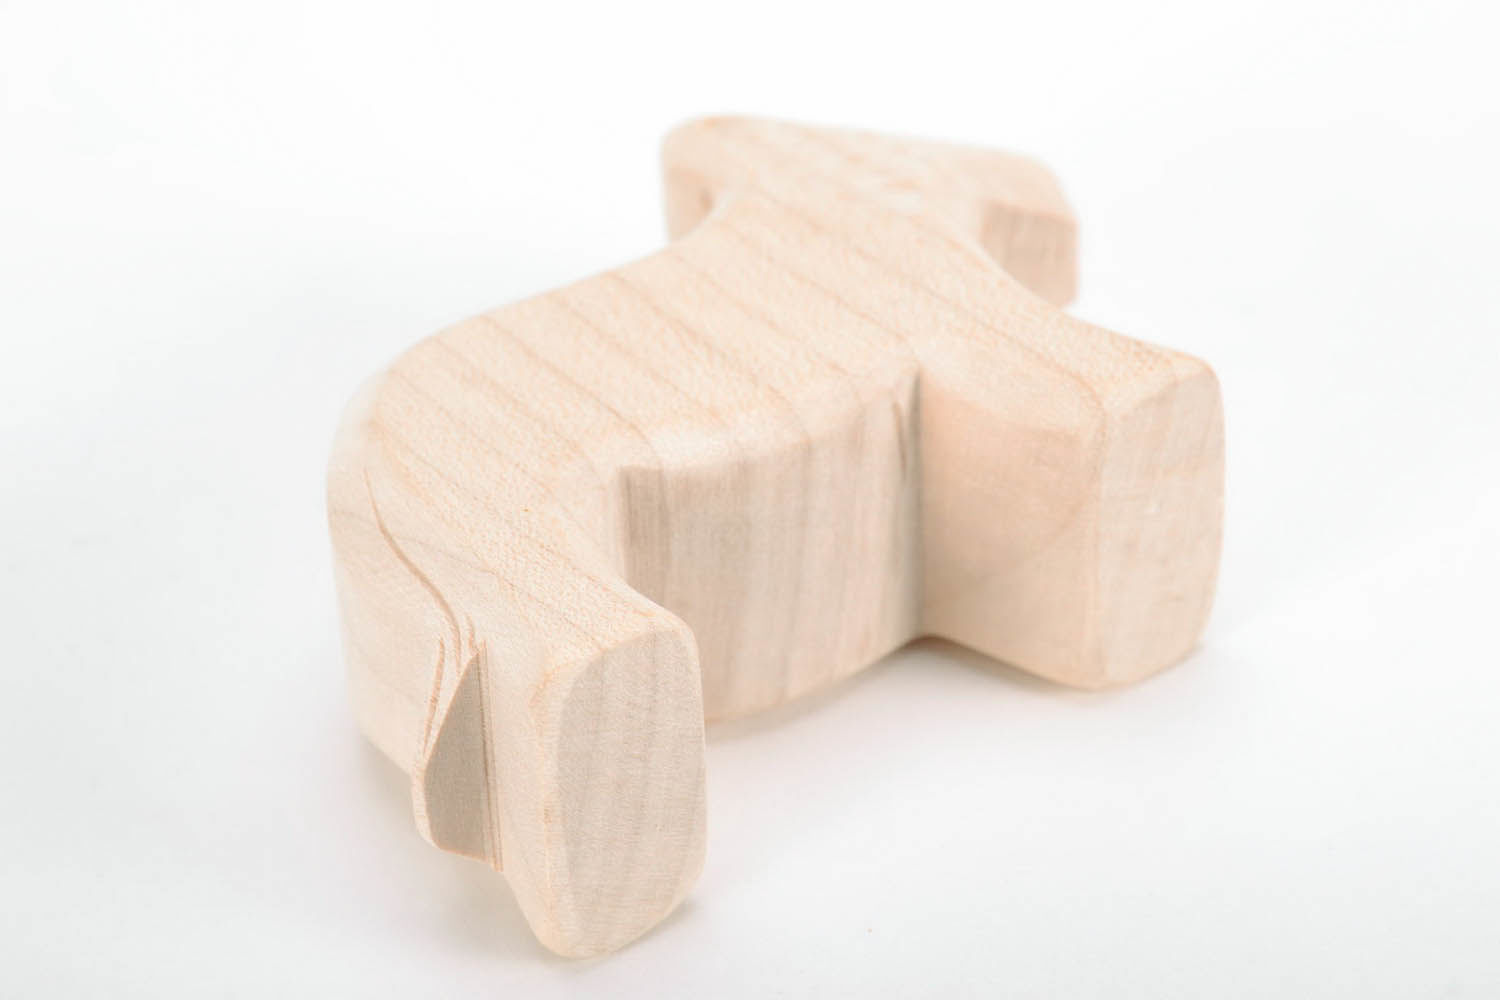 Spielzeug Aus Holz Madeheart Gt Spielzeug Aus Holz Quotlöwe Quot